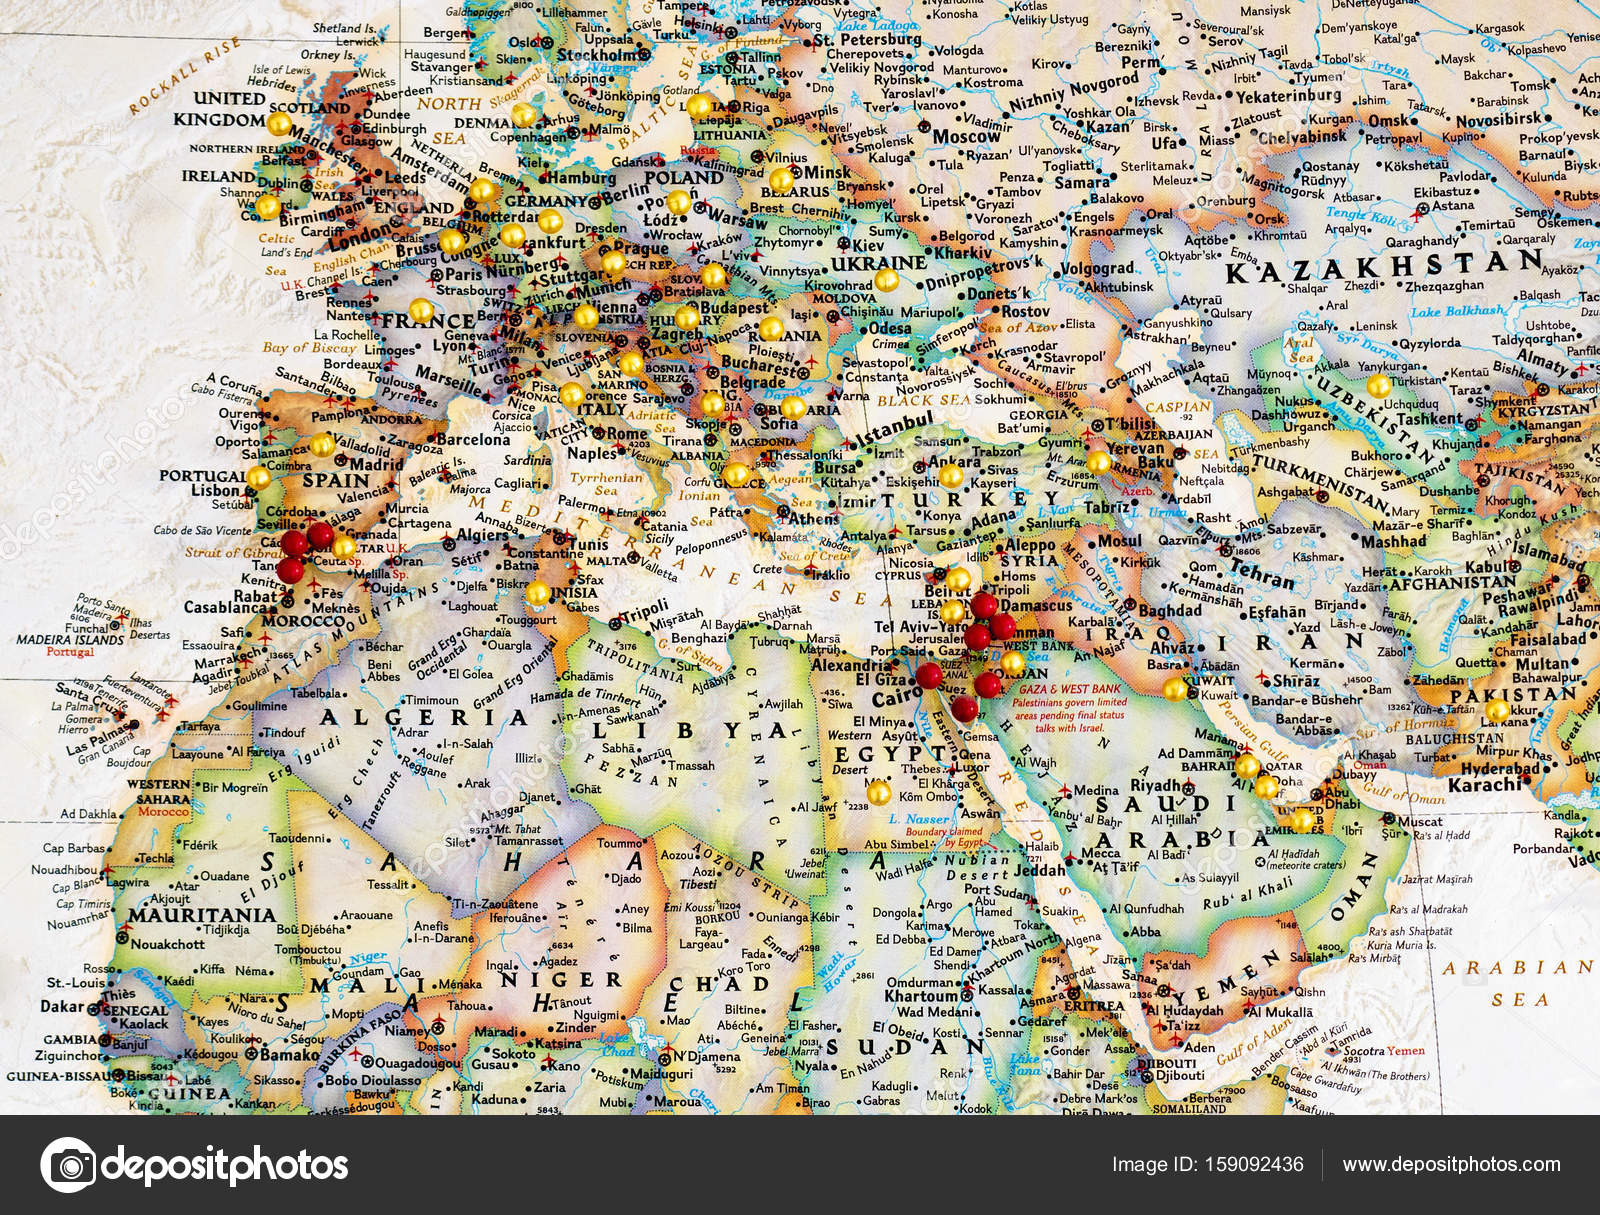 Europe & Middle East Map with Map Tacks – Stock Editorial Photo ...